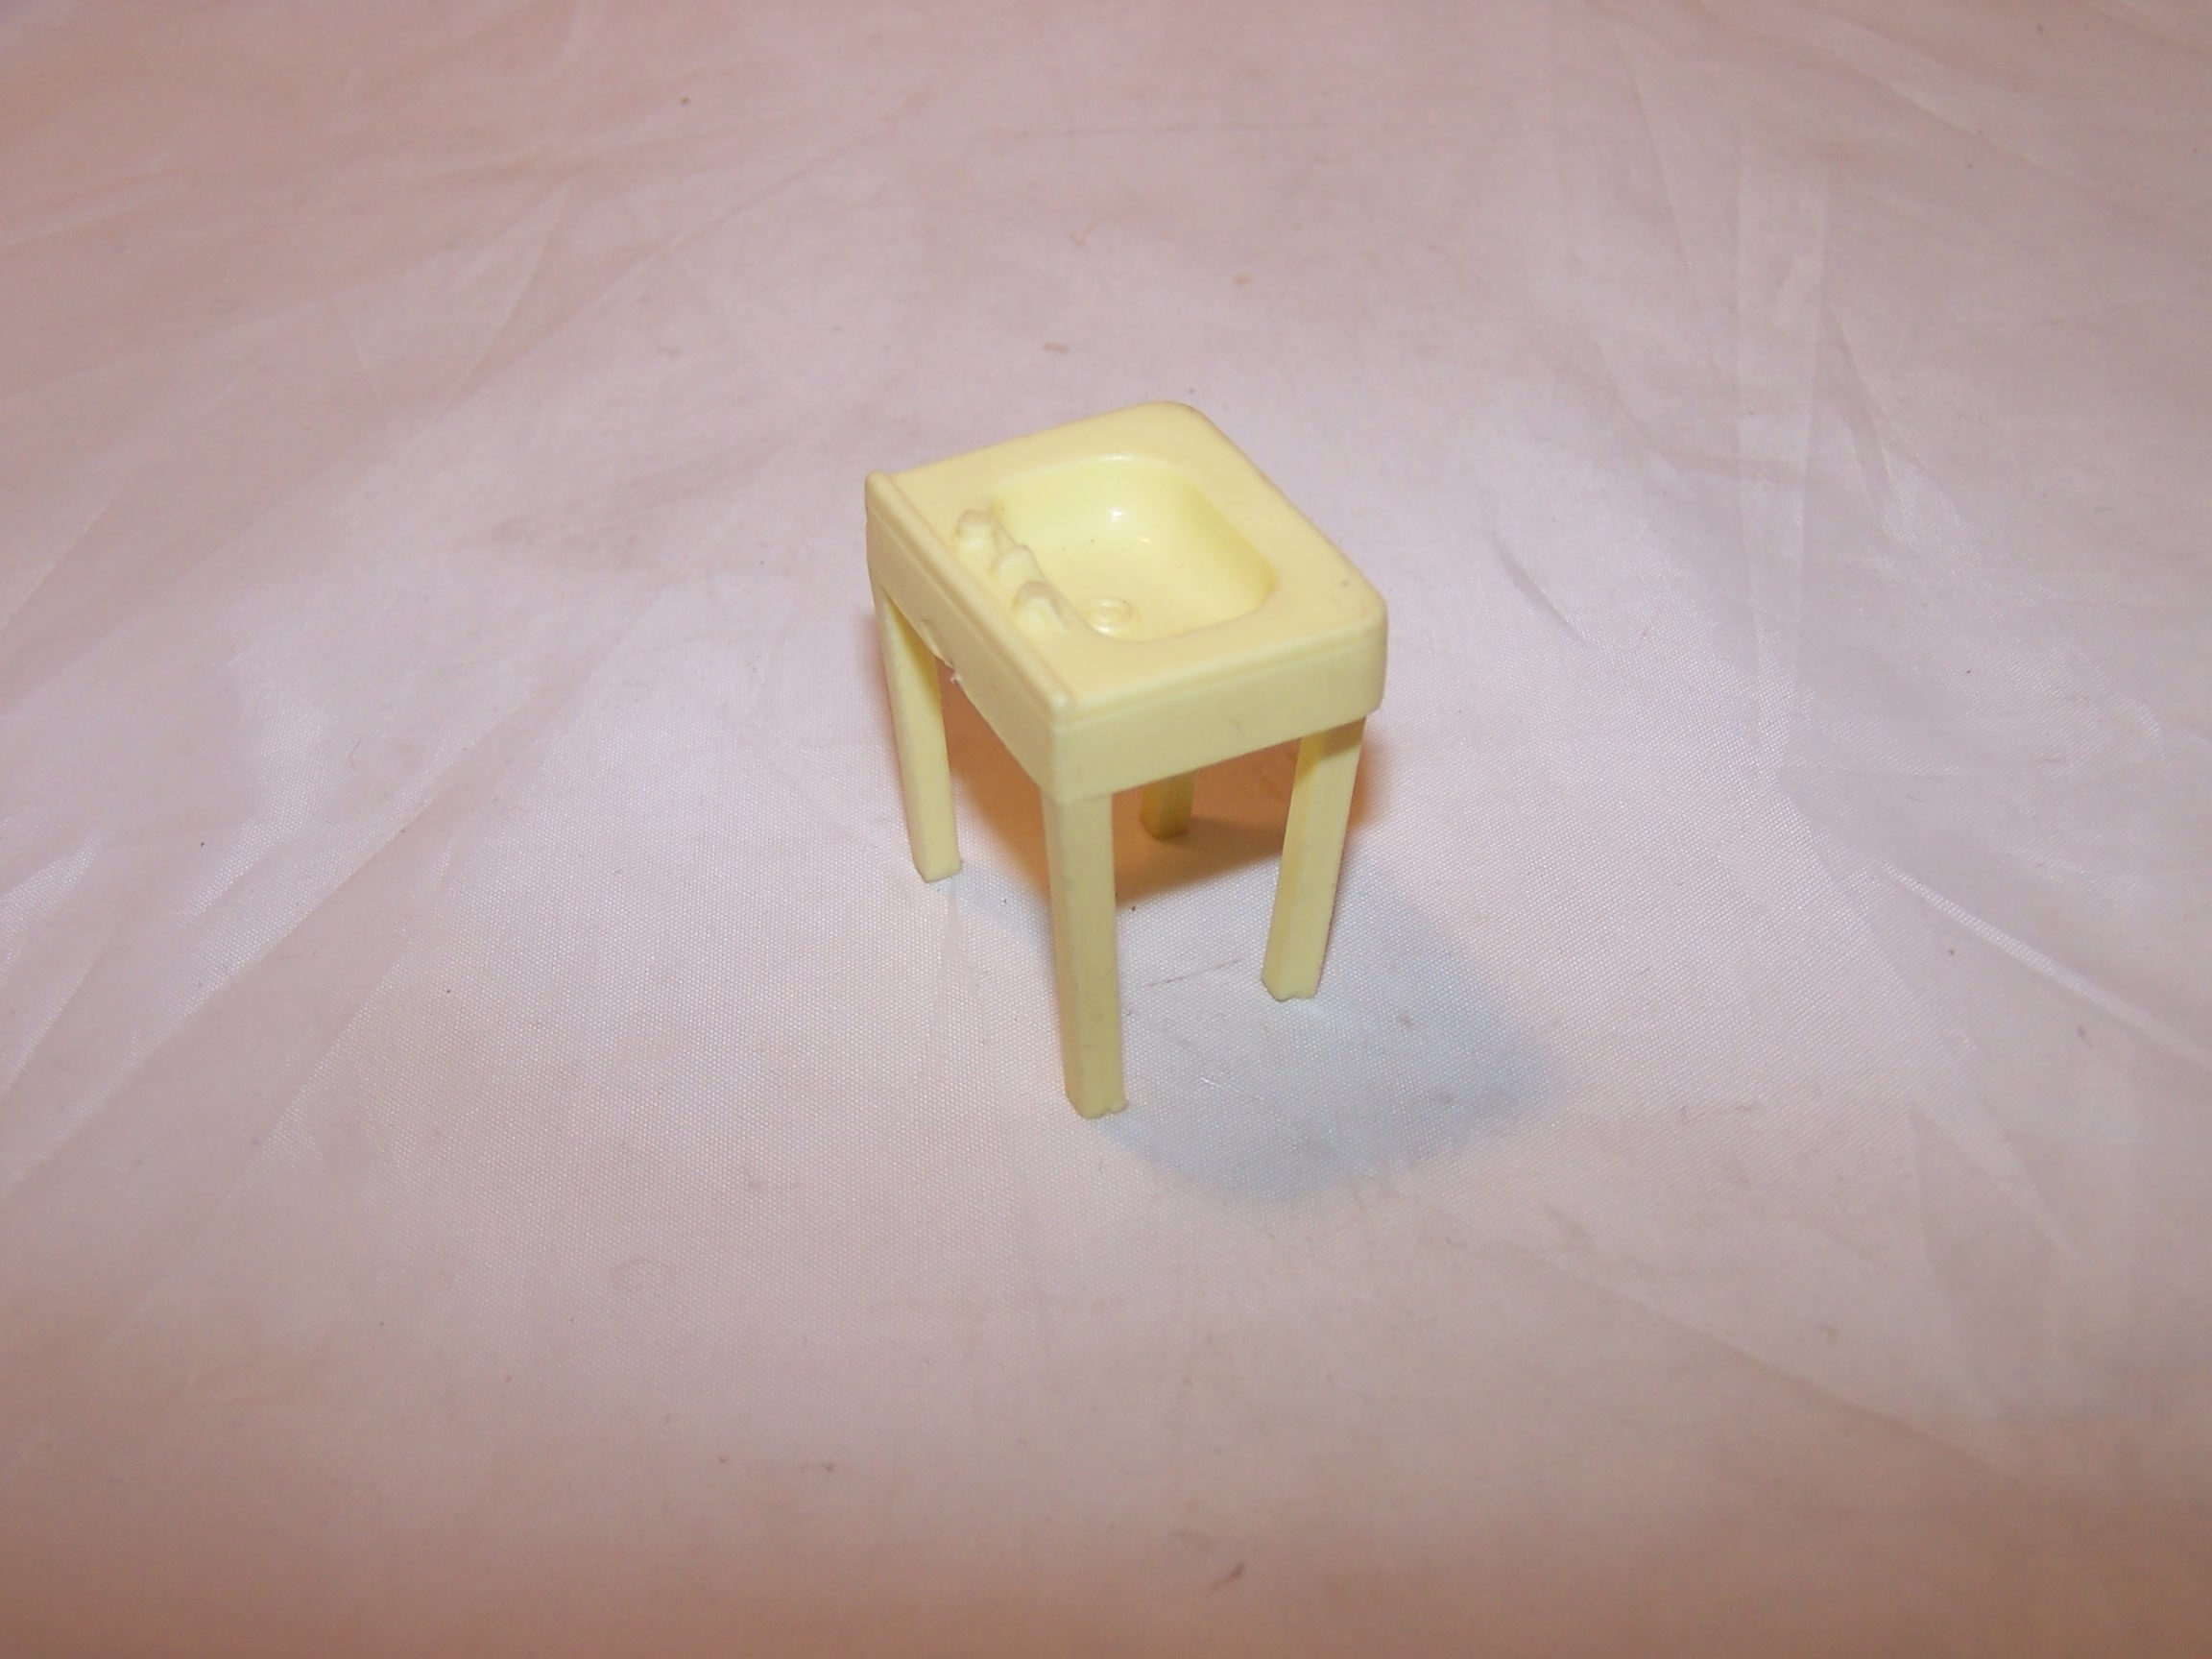 Image 2 of Dollhouse Bathroom Sink, Plastic, Vintage